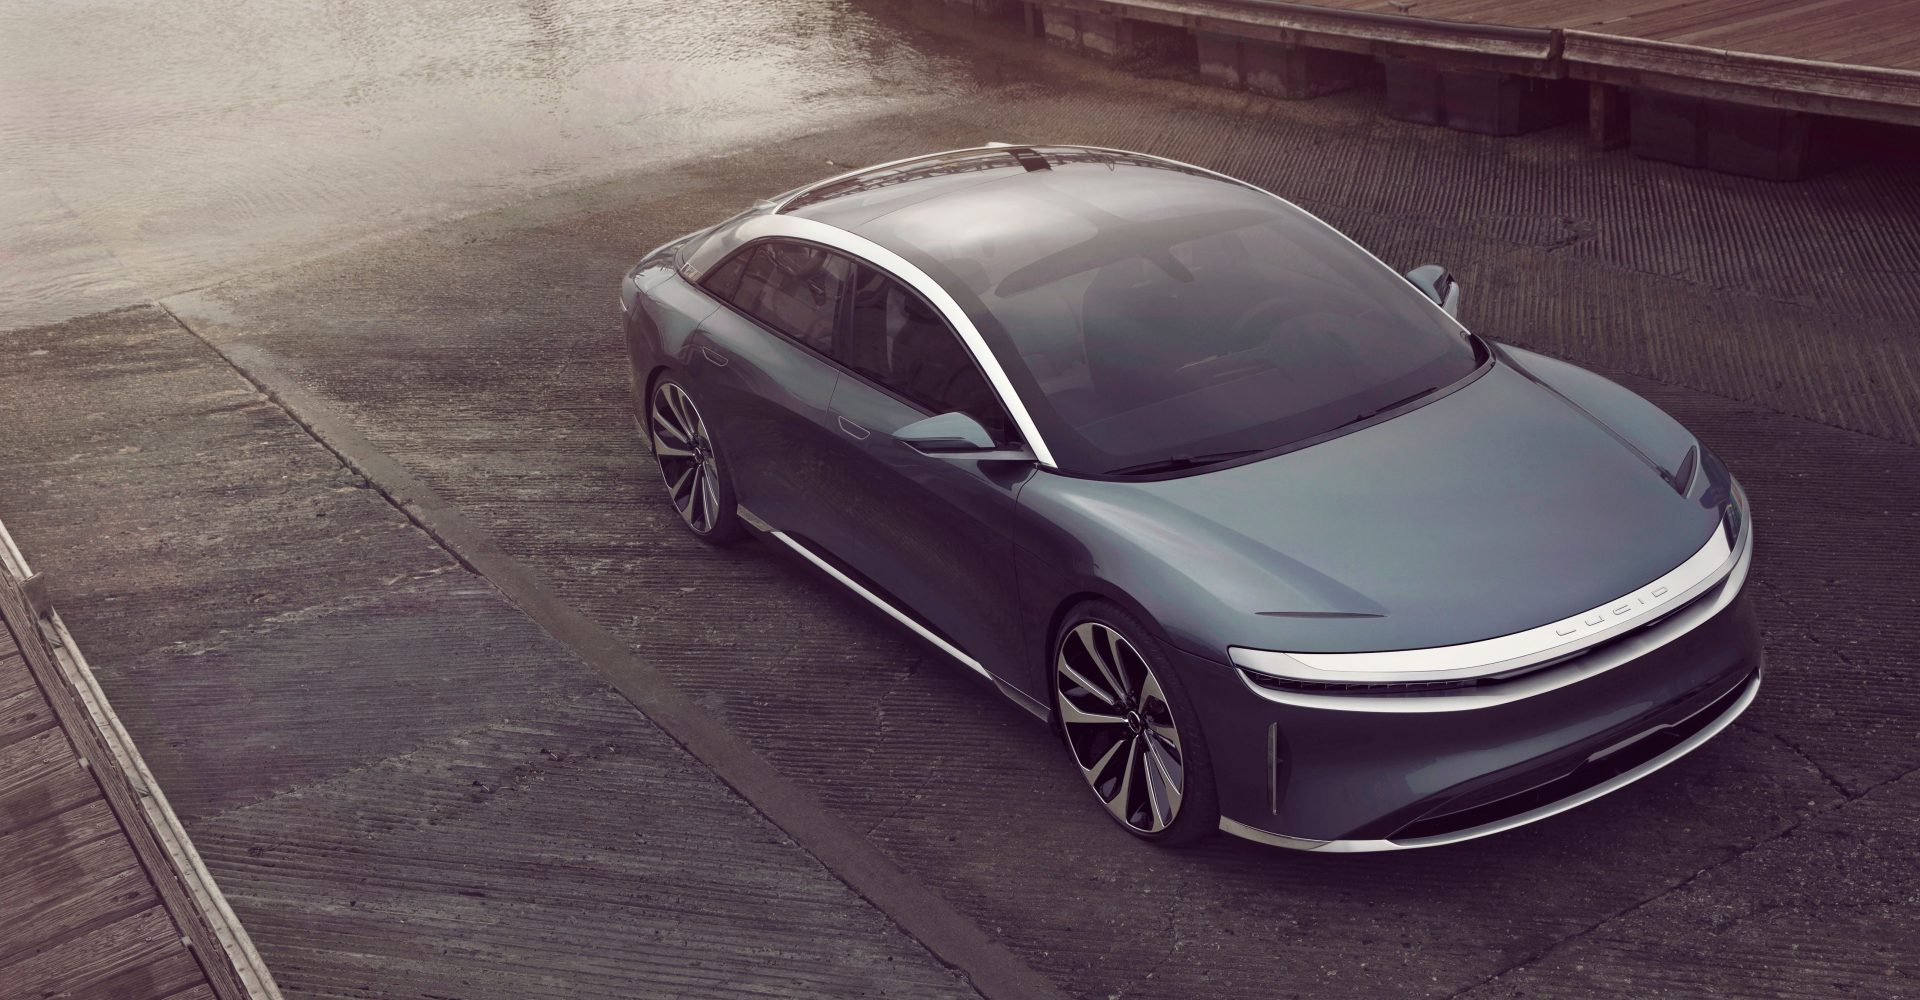 Lucid Air EV revealed with 517-mile range